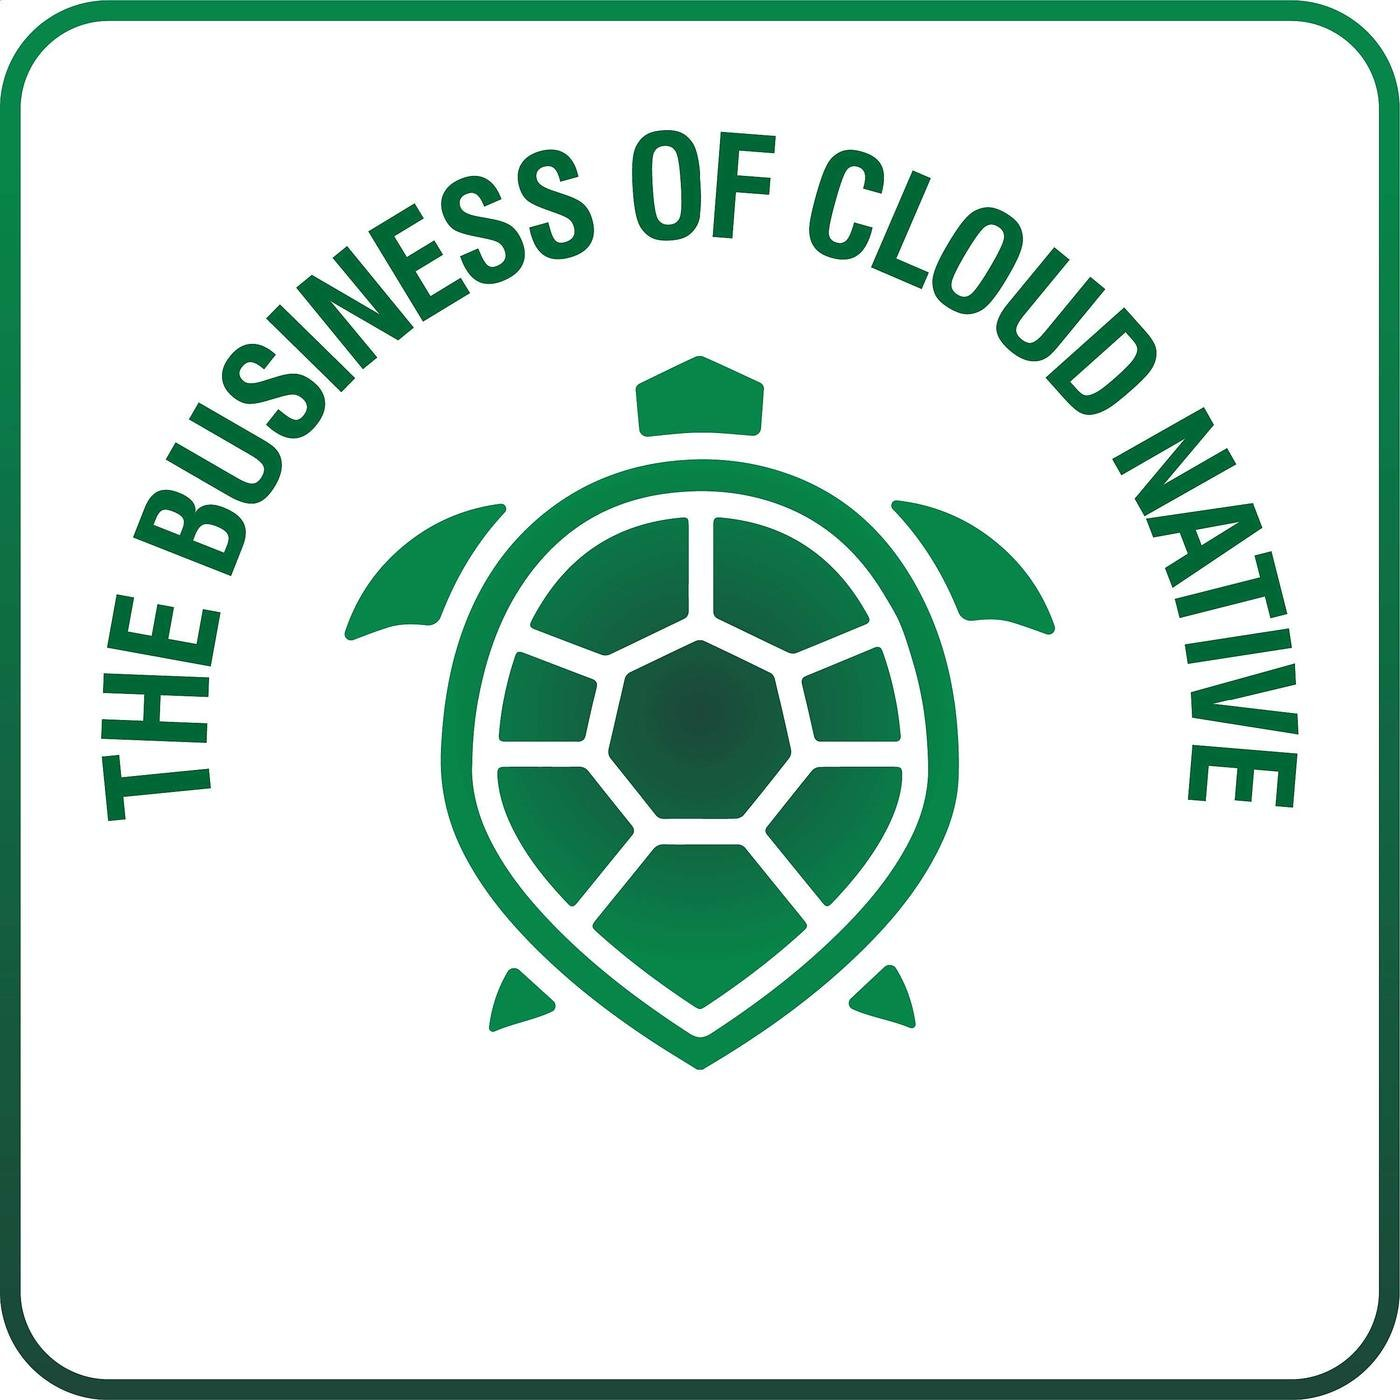 the-business-of-cloud-native-CBHOepwUctP--tBqHeOdKsr.1400x1400